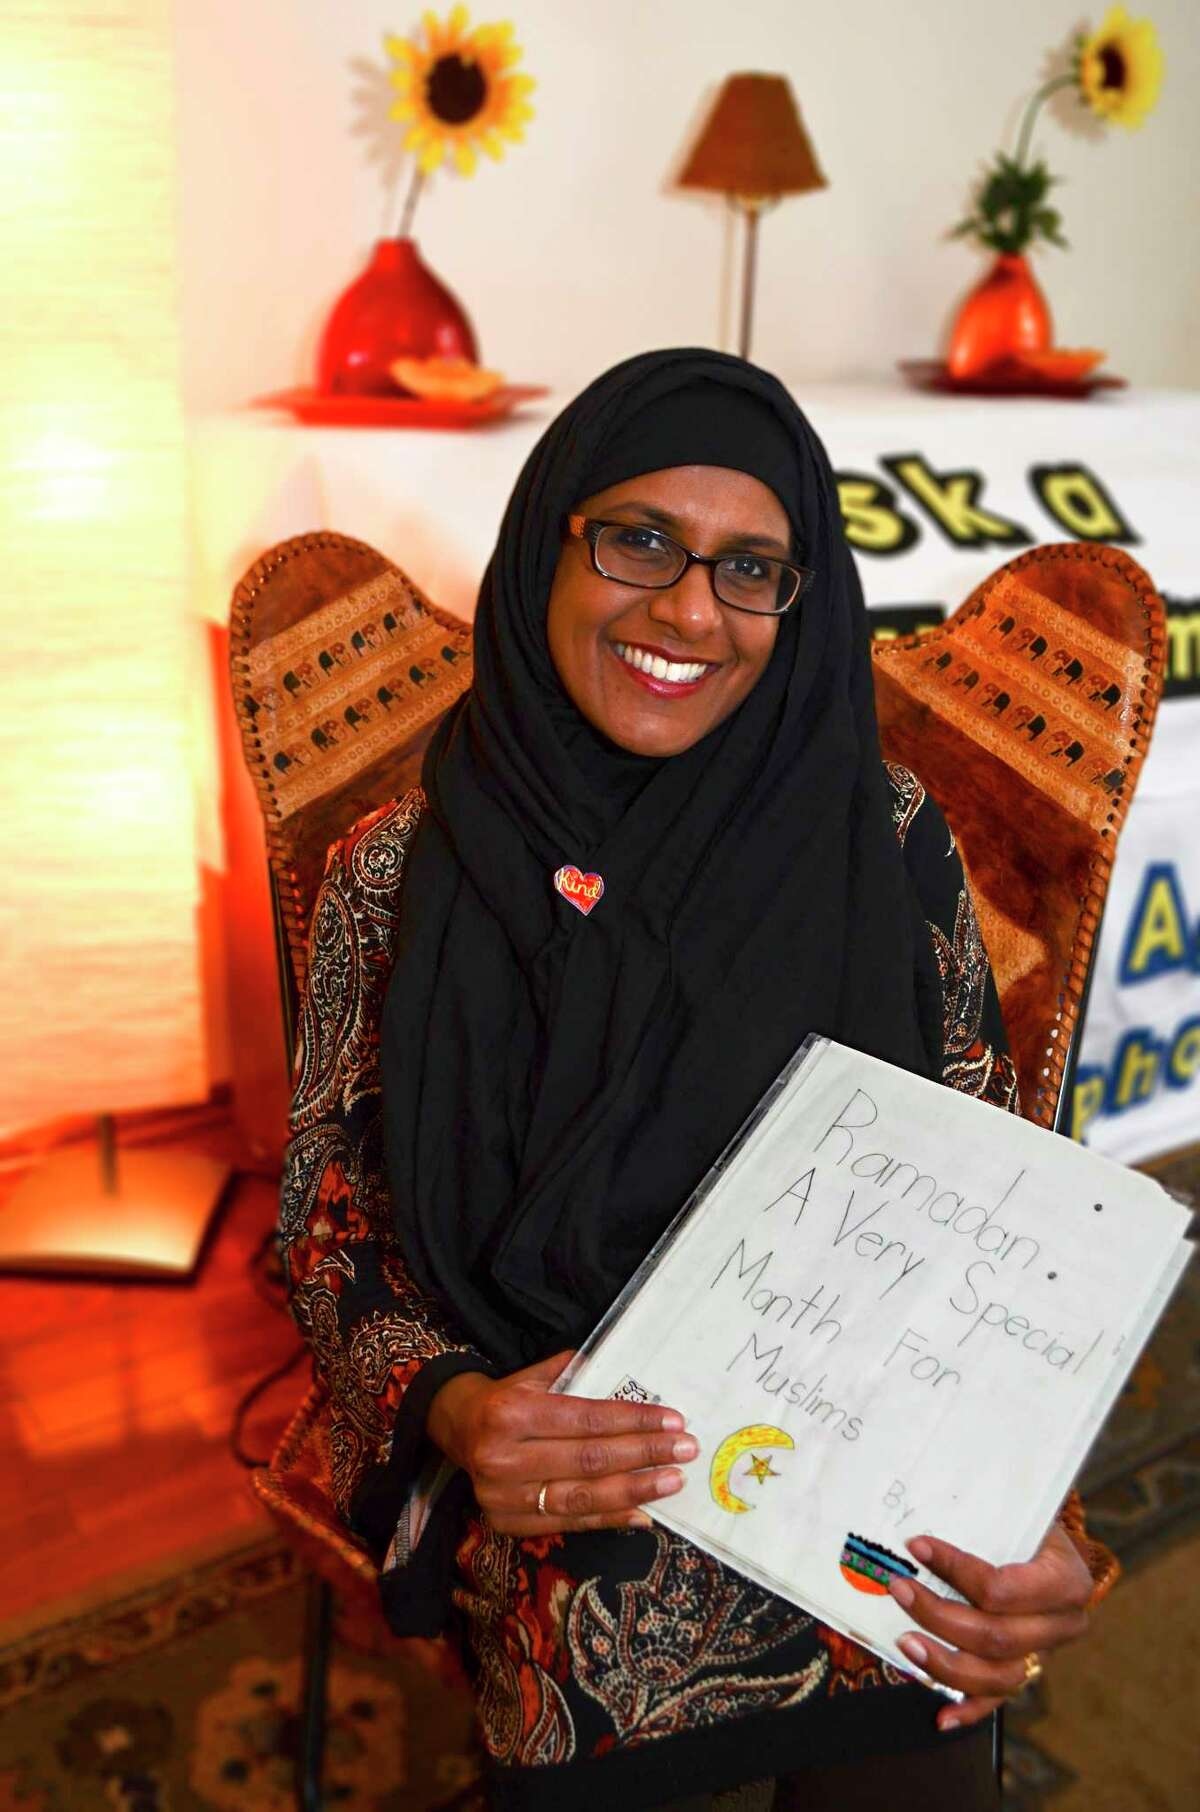 Fazana Saleem-Ismail in her home in Schenectady, N.Y., on Friday, January 27, 2017. Saleem-Ismail is Chair of the community outreach committee for Capital Region Coalition Against Islamophobia.